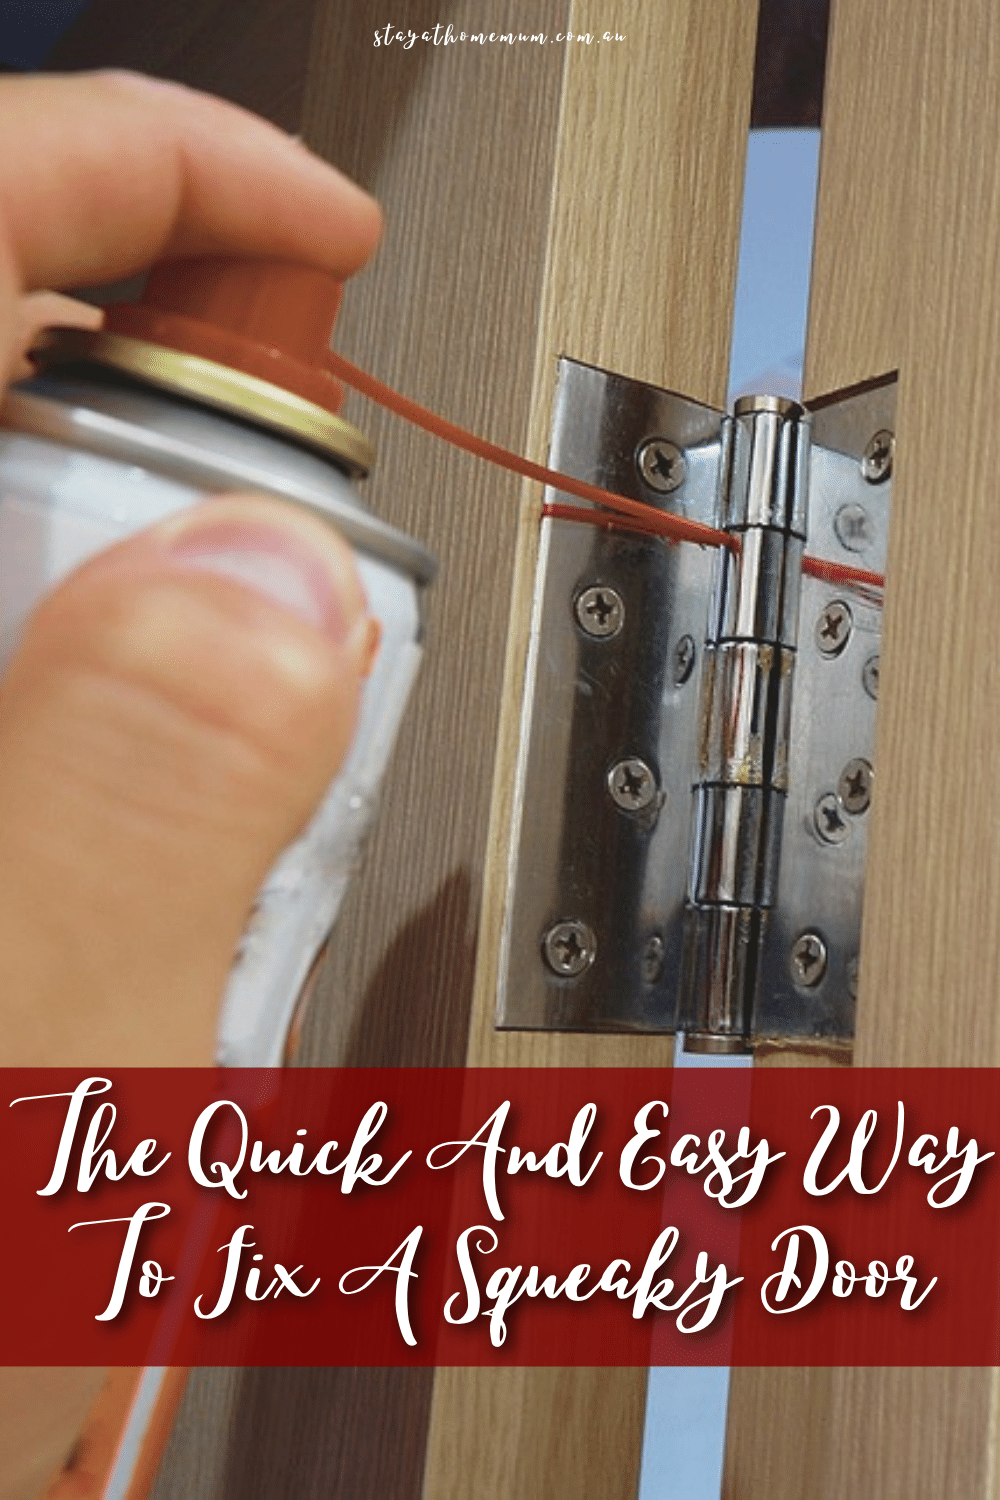 The Quick And Easy Way To Fix A Squeaky Door Pinnable